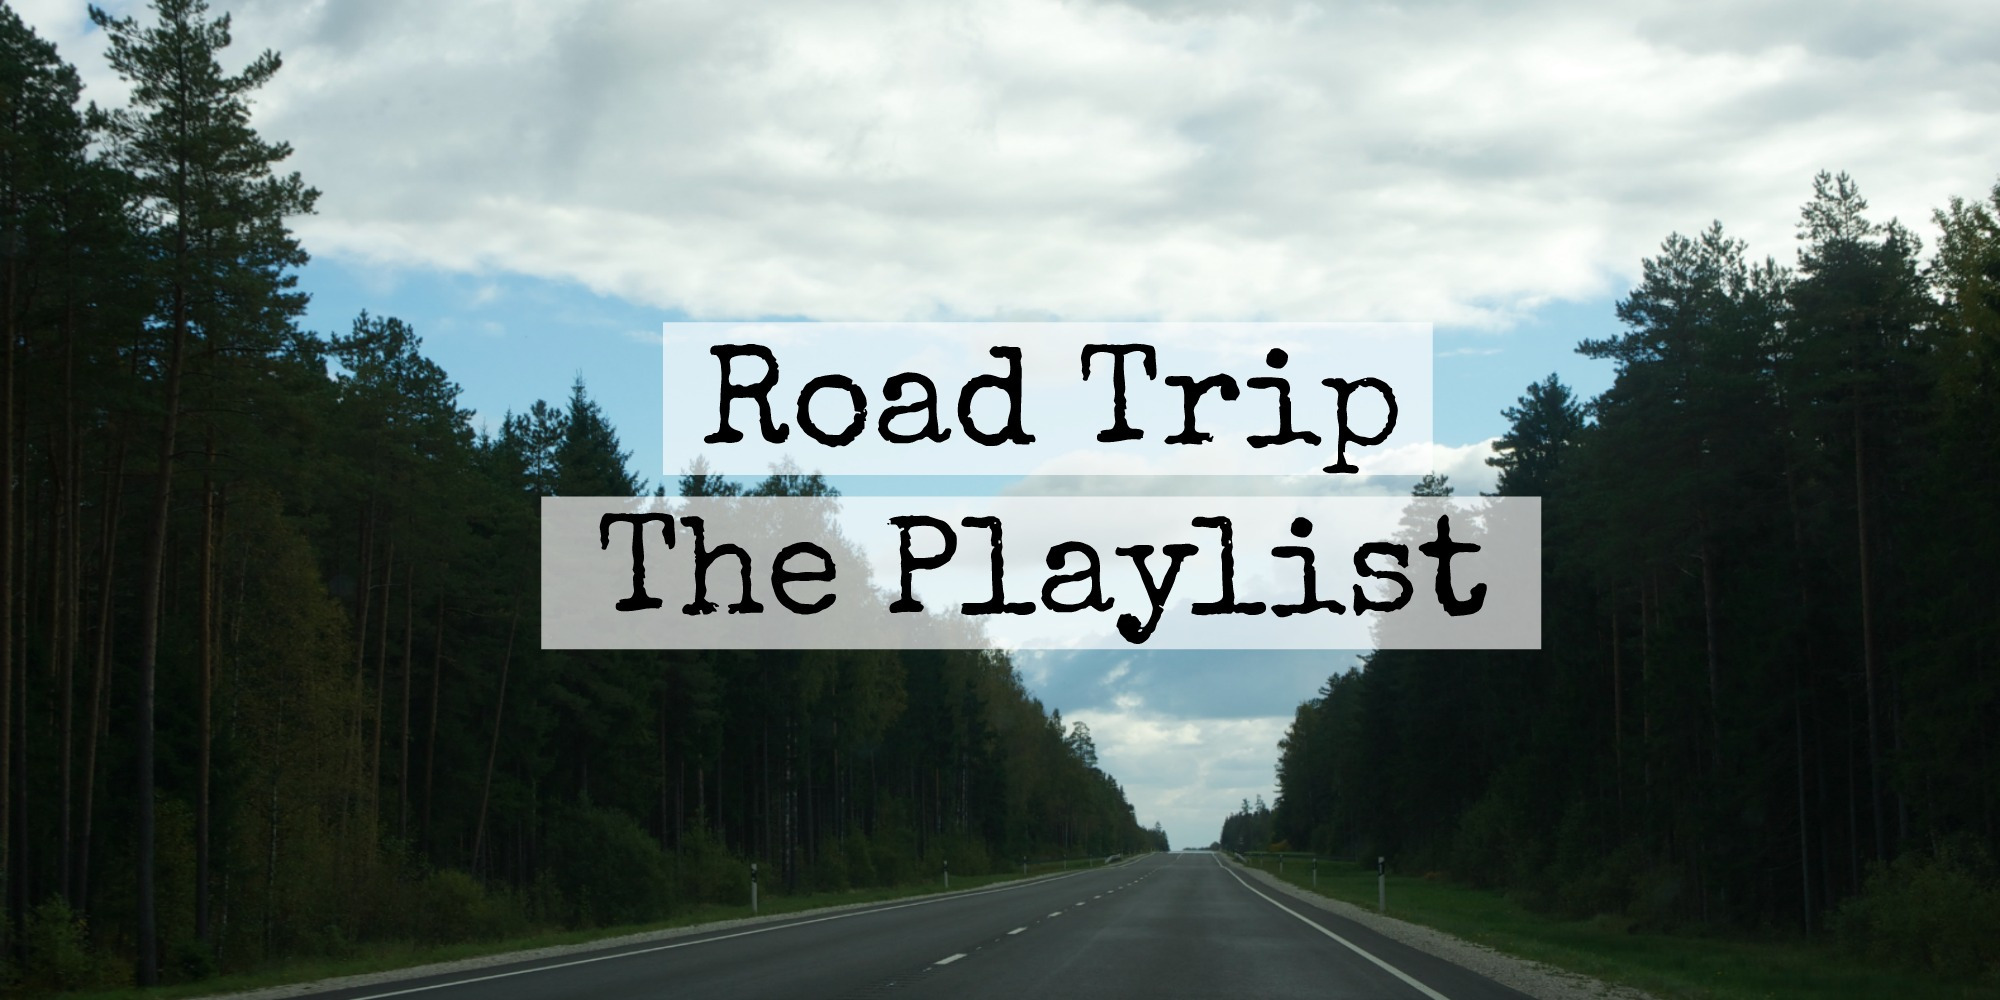 Road trip - the playlist